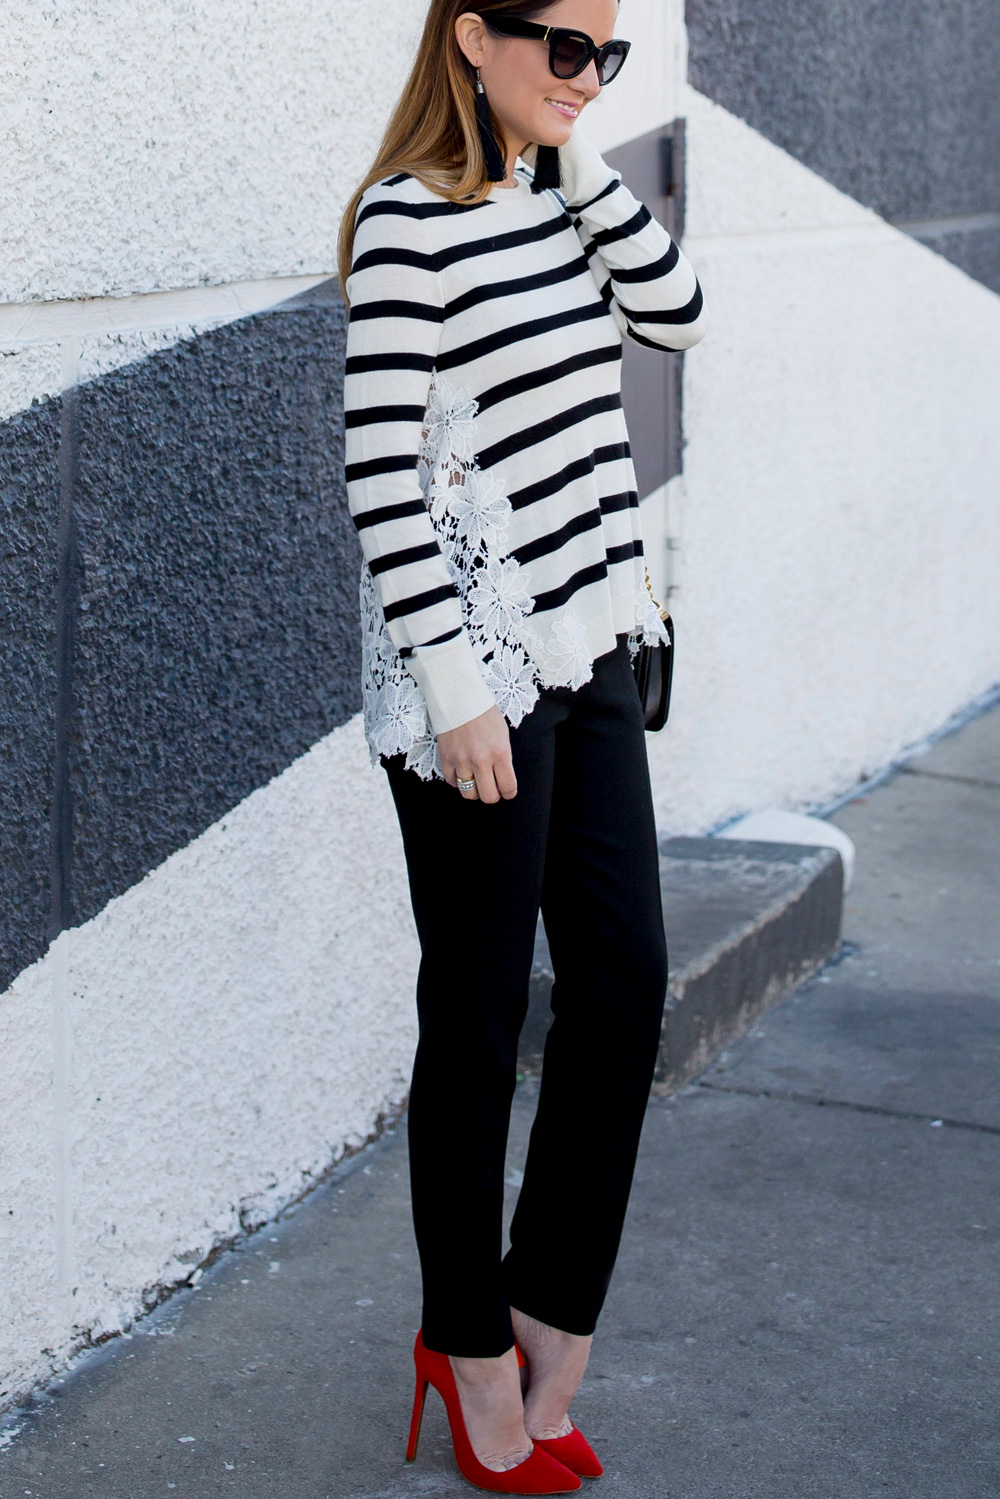 Jennifer Lake Style Charade in a black and white stripe sweater with lace detail, black tassel earrings, and red pumps at a black and white wall in Chicago